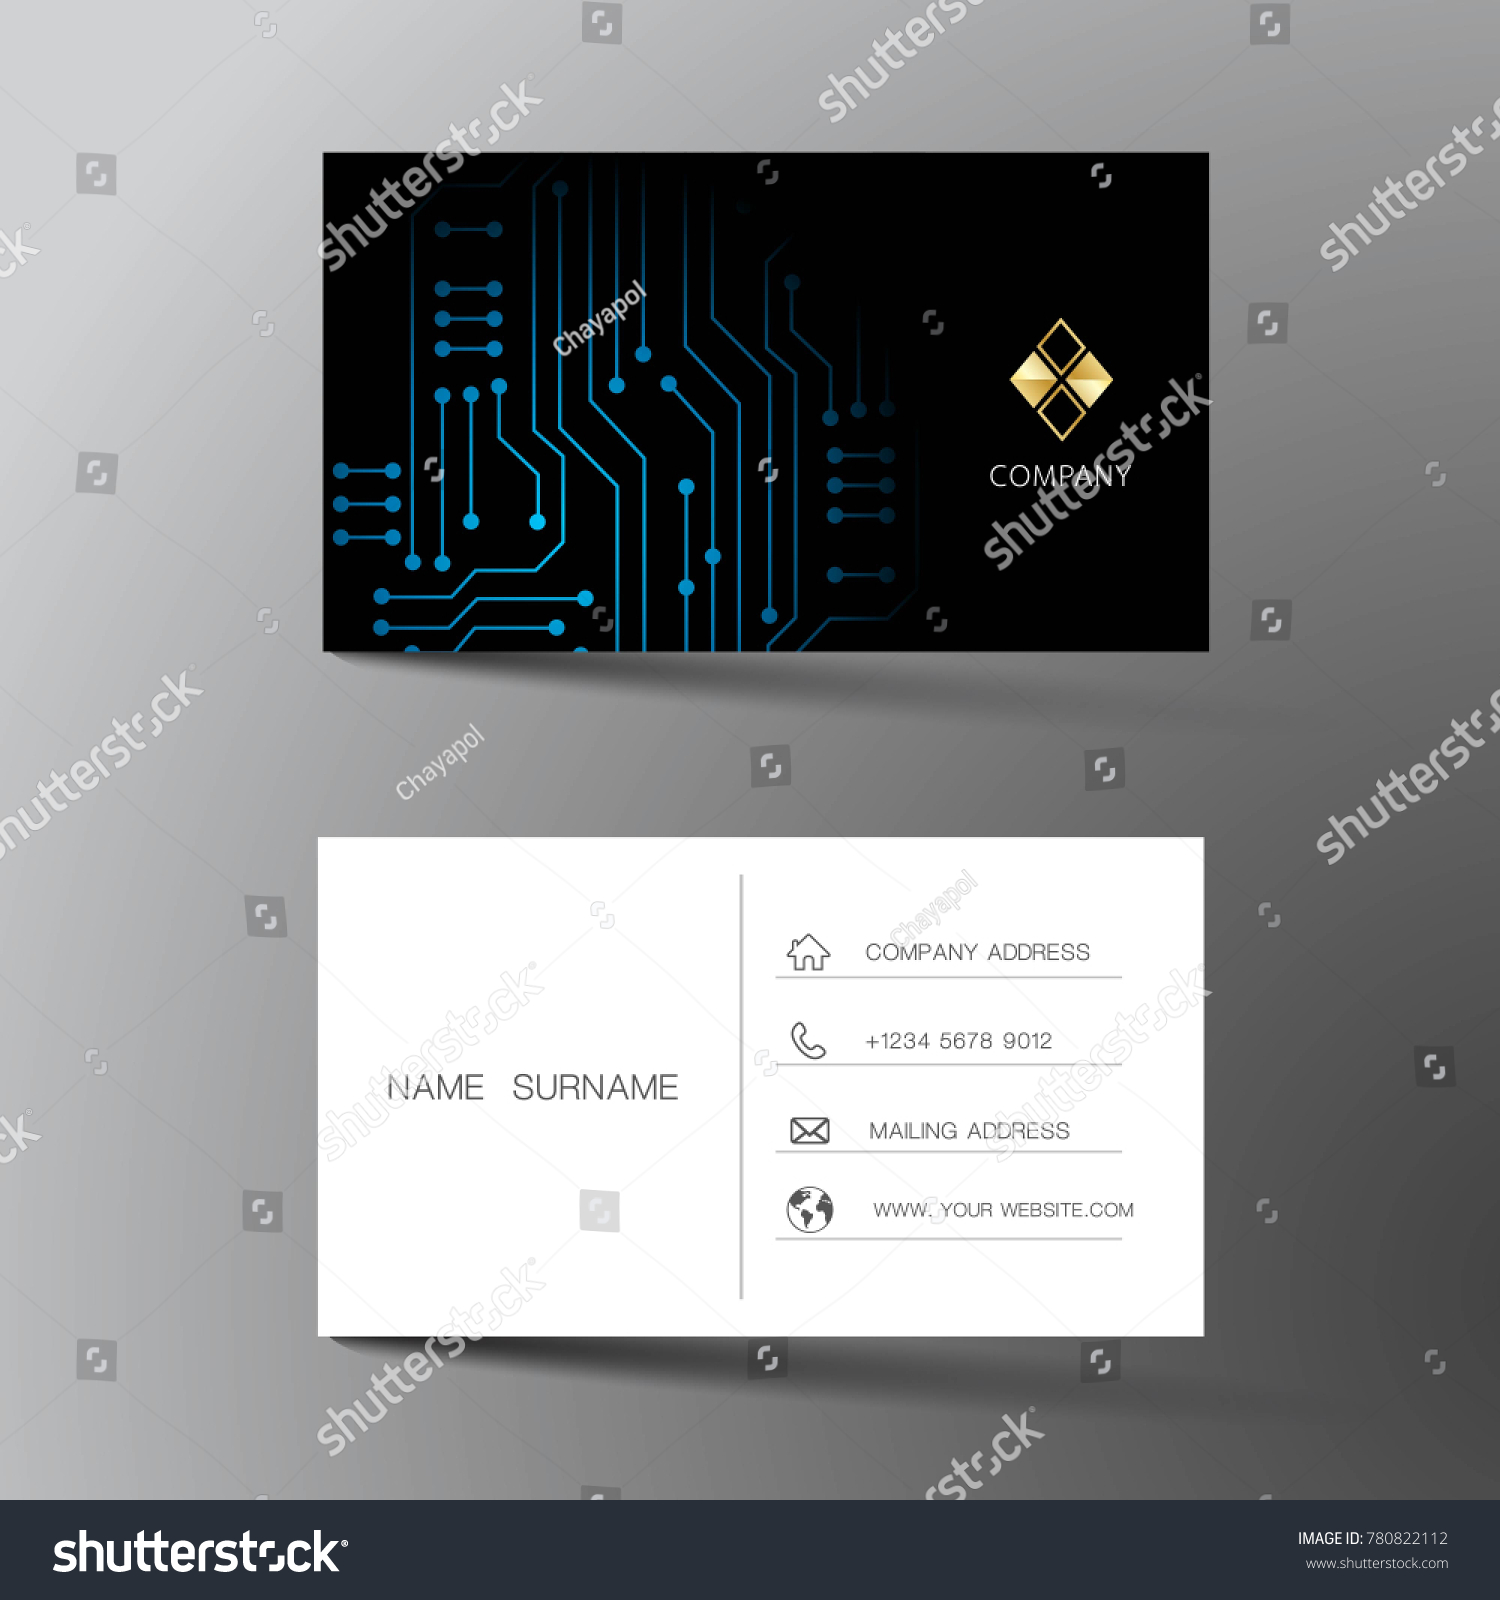 Modern Business Card Template Design With Inspiration From Abstract Digital Circuit Contact For